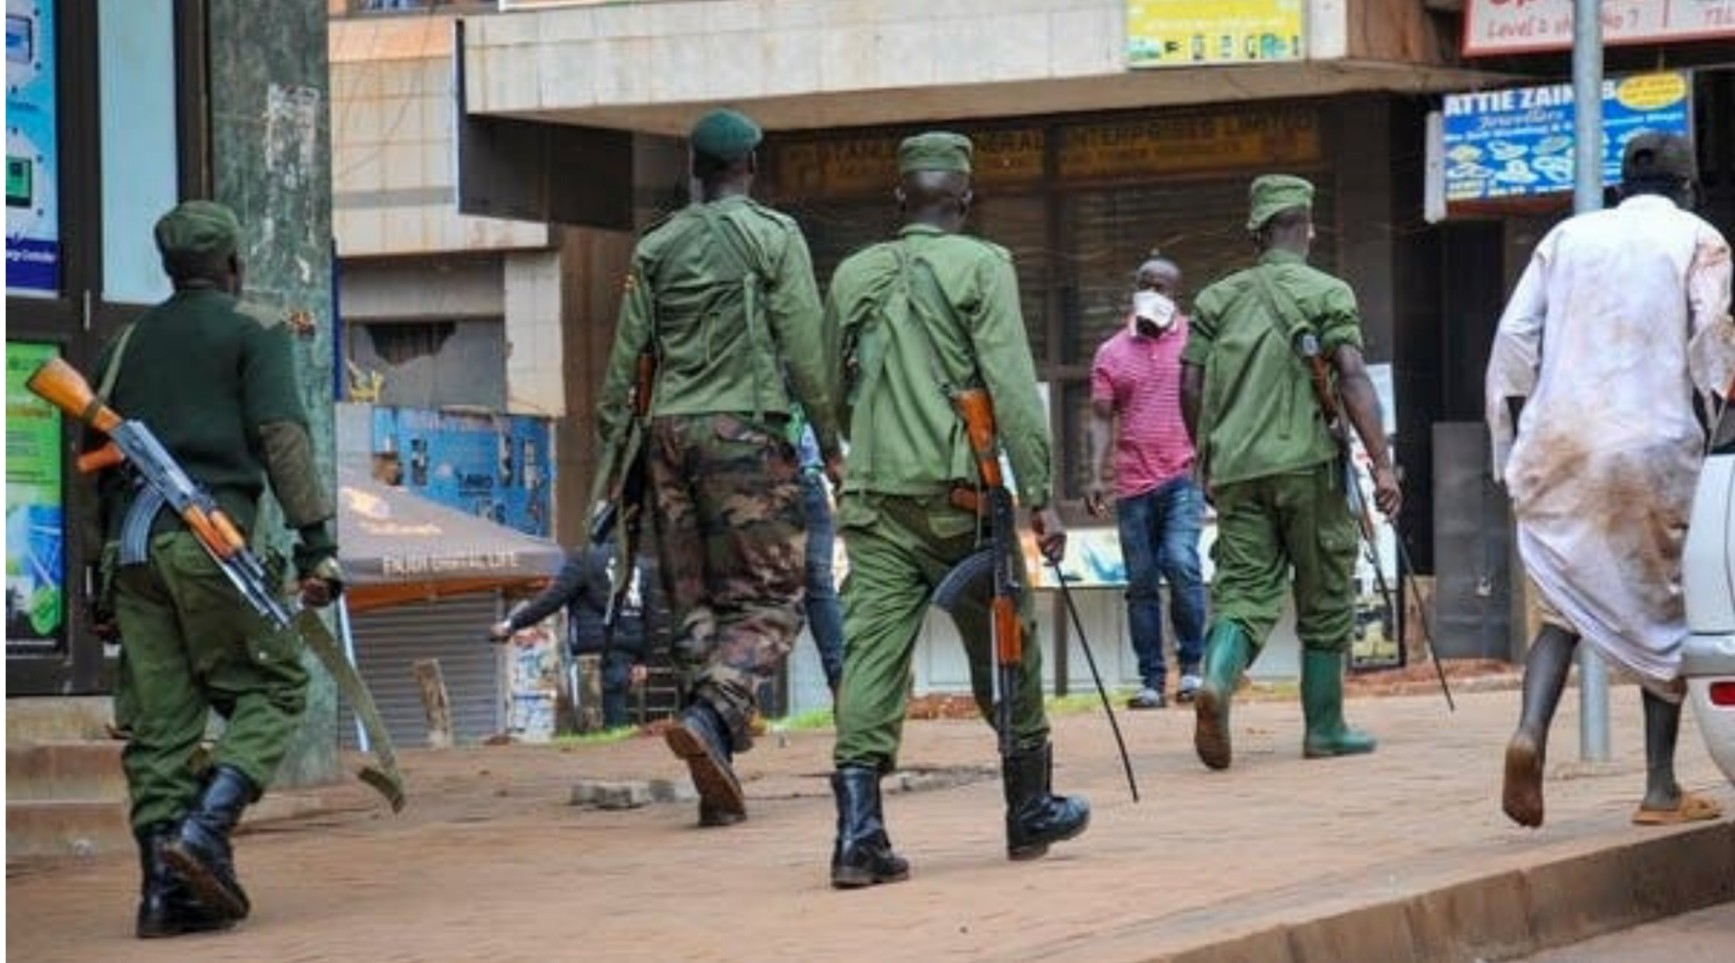 Uganda police launch manhunt for 215 escaped prisoners after jailbreak